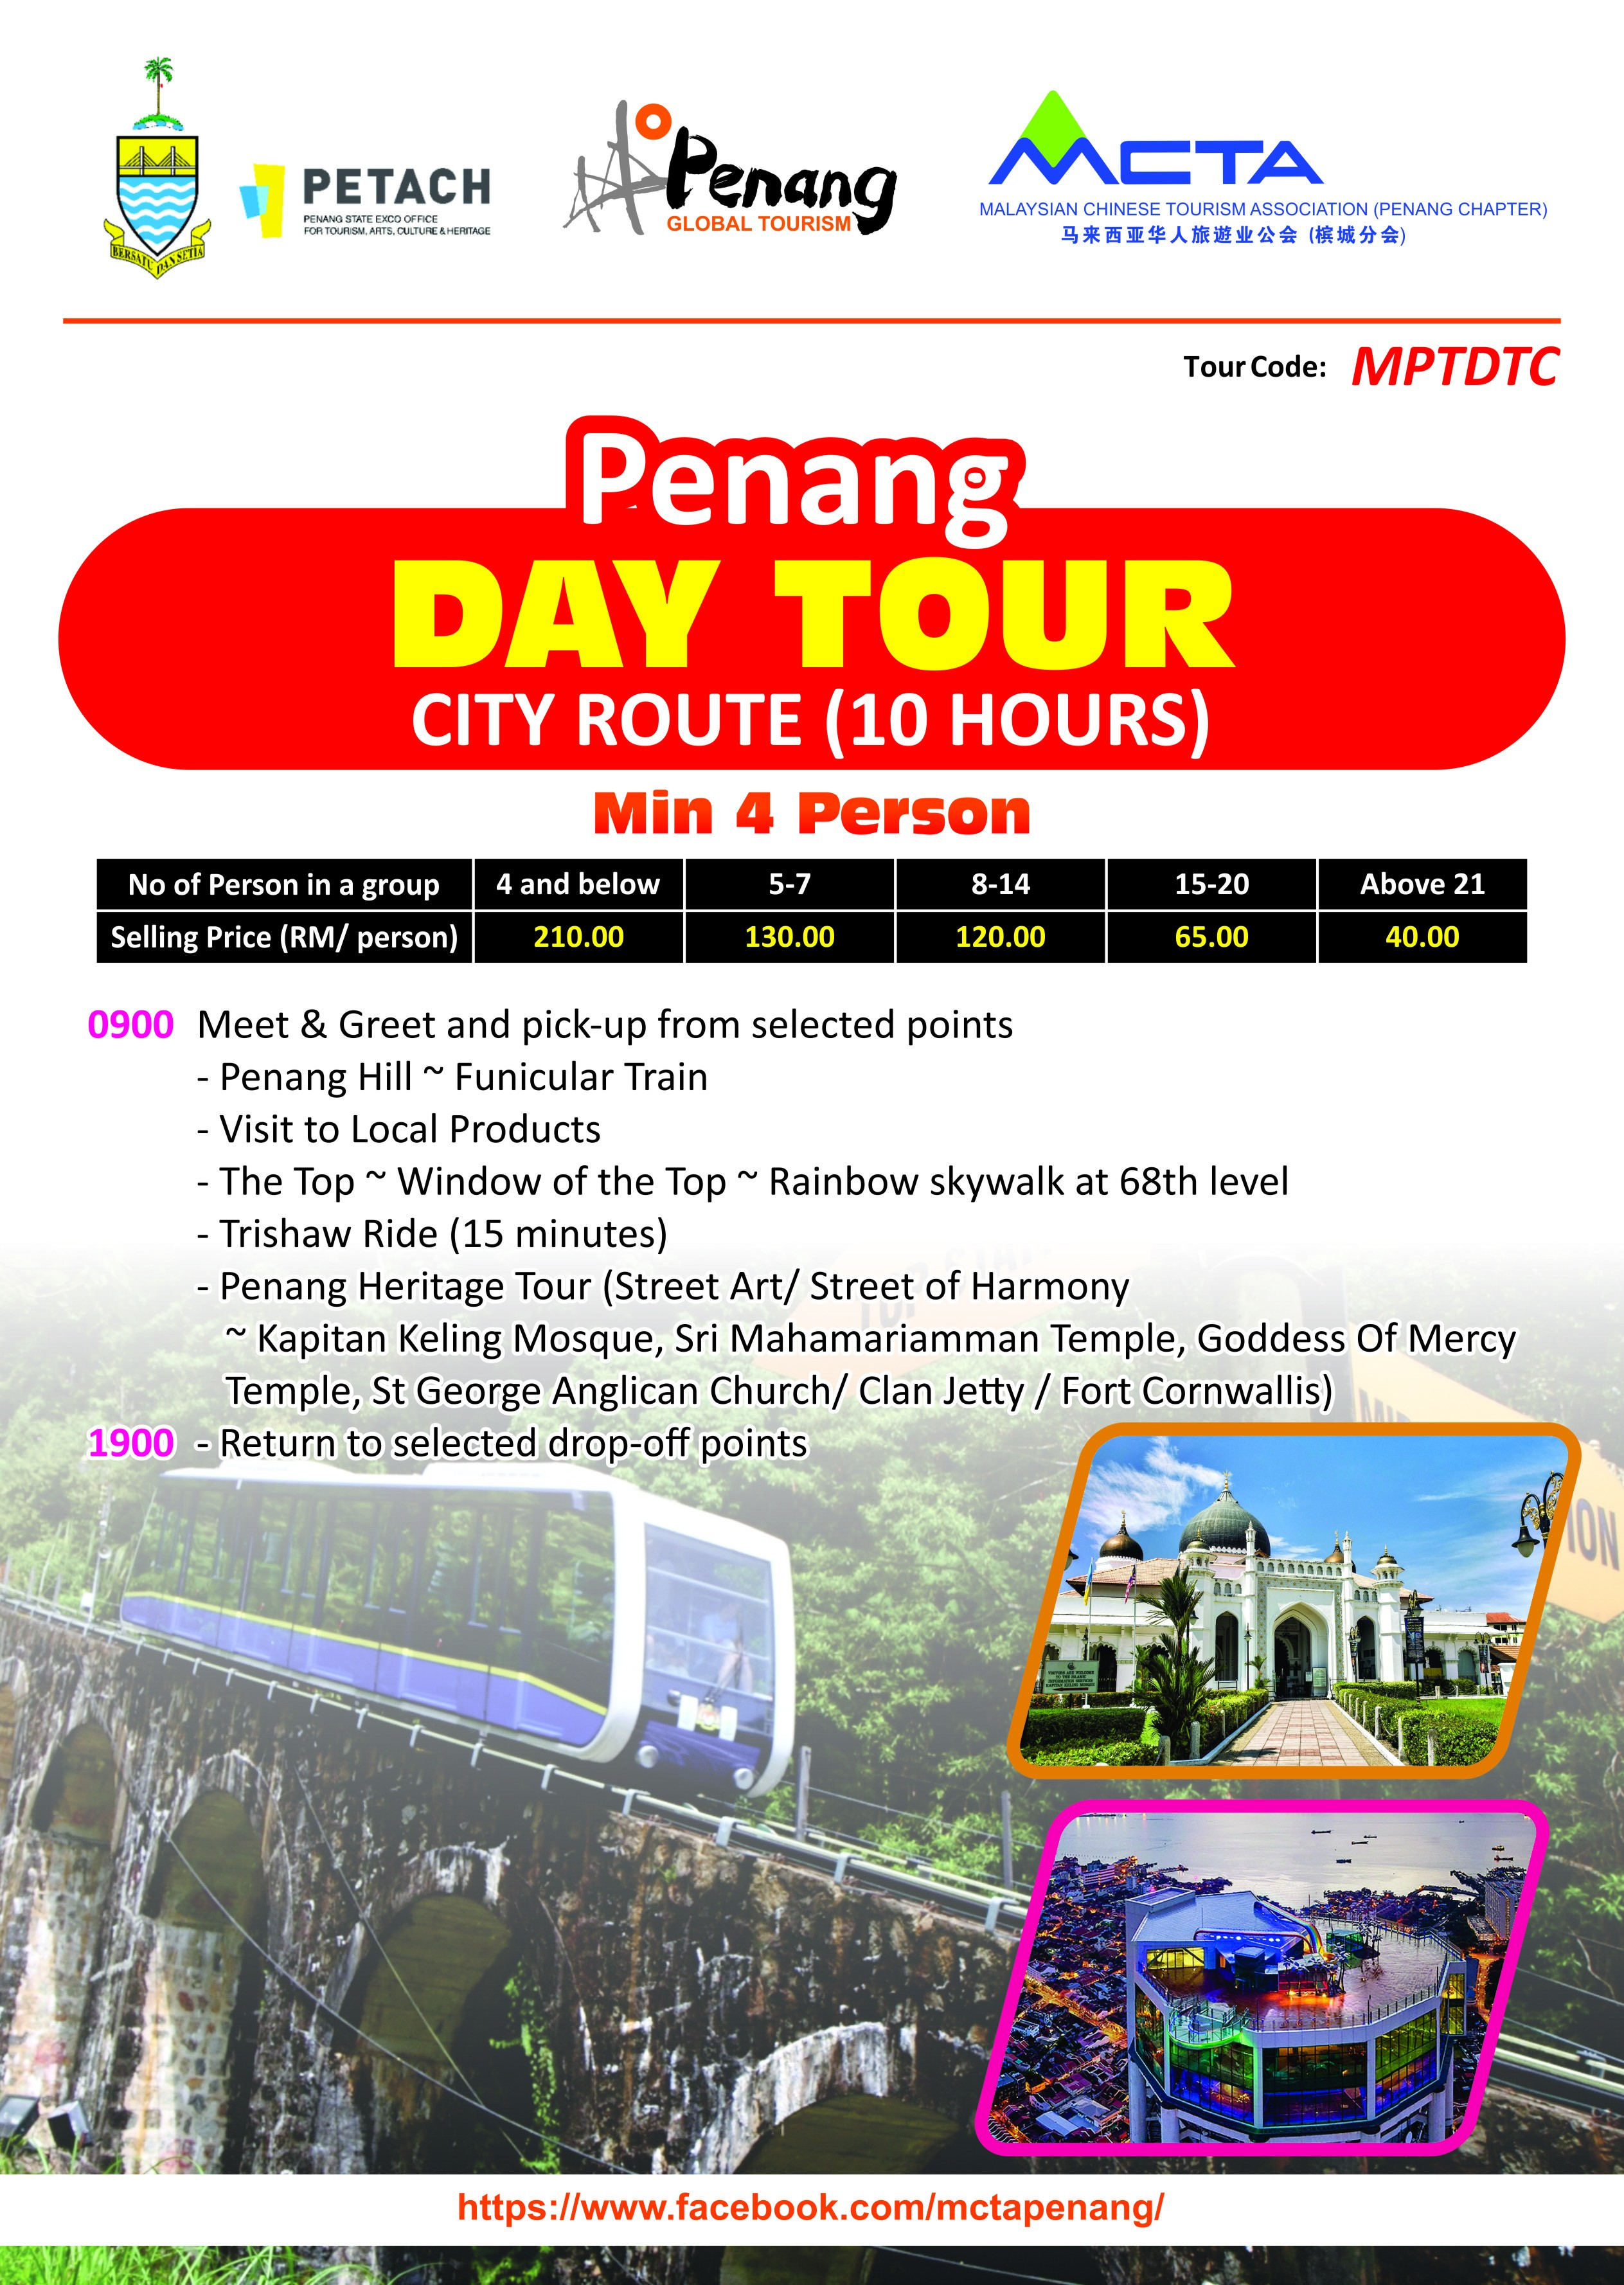 Penang Day Tour - City Route (10 Hours)